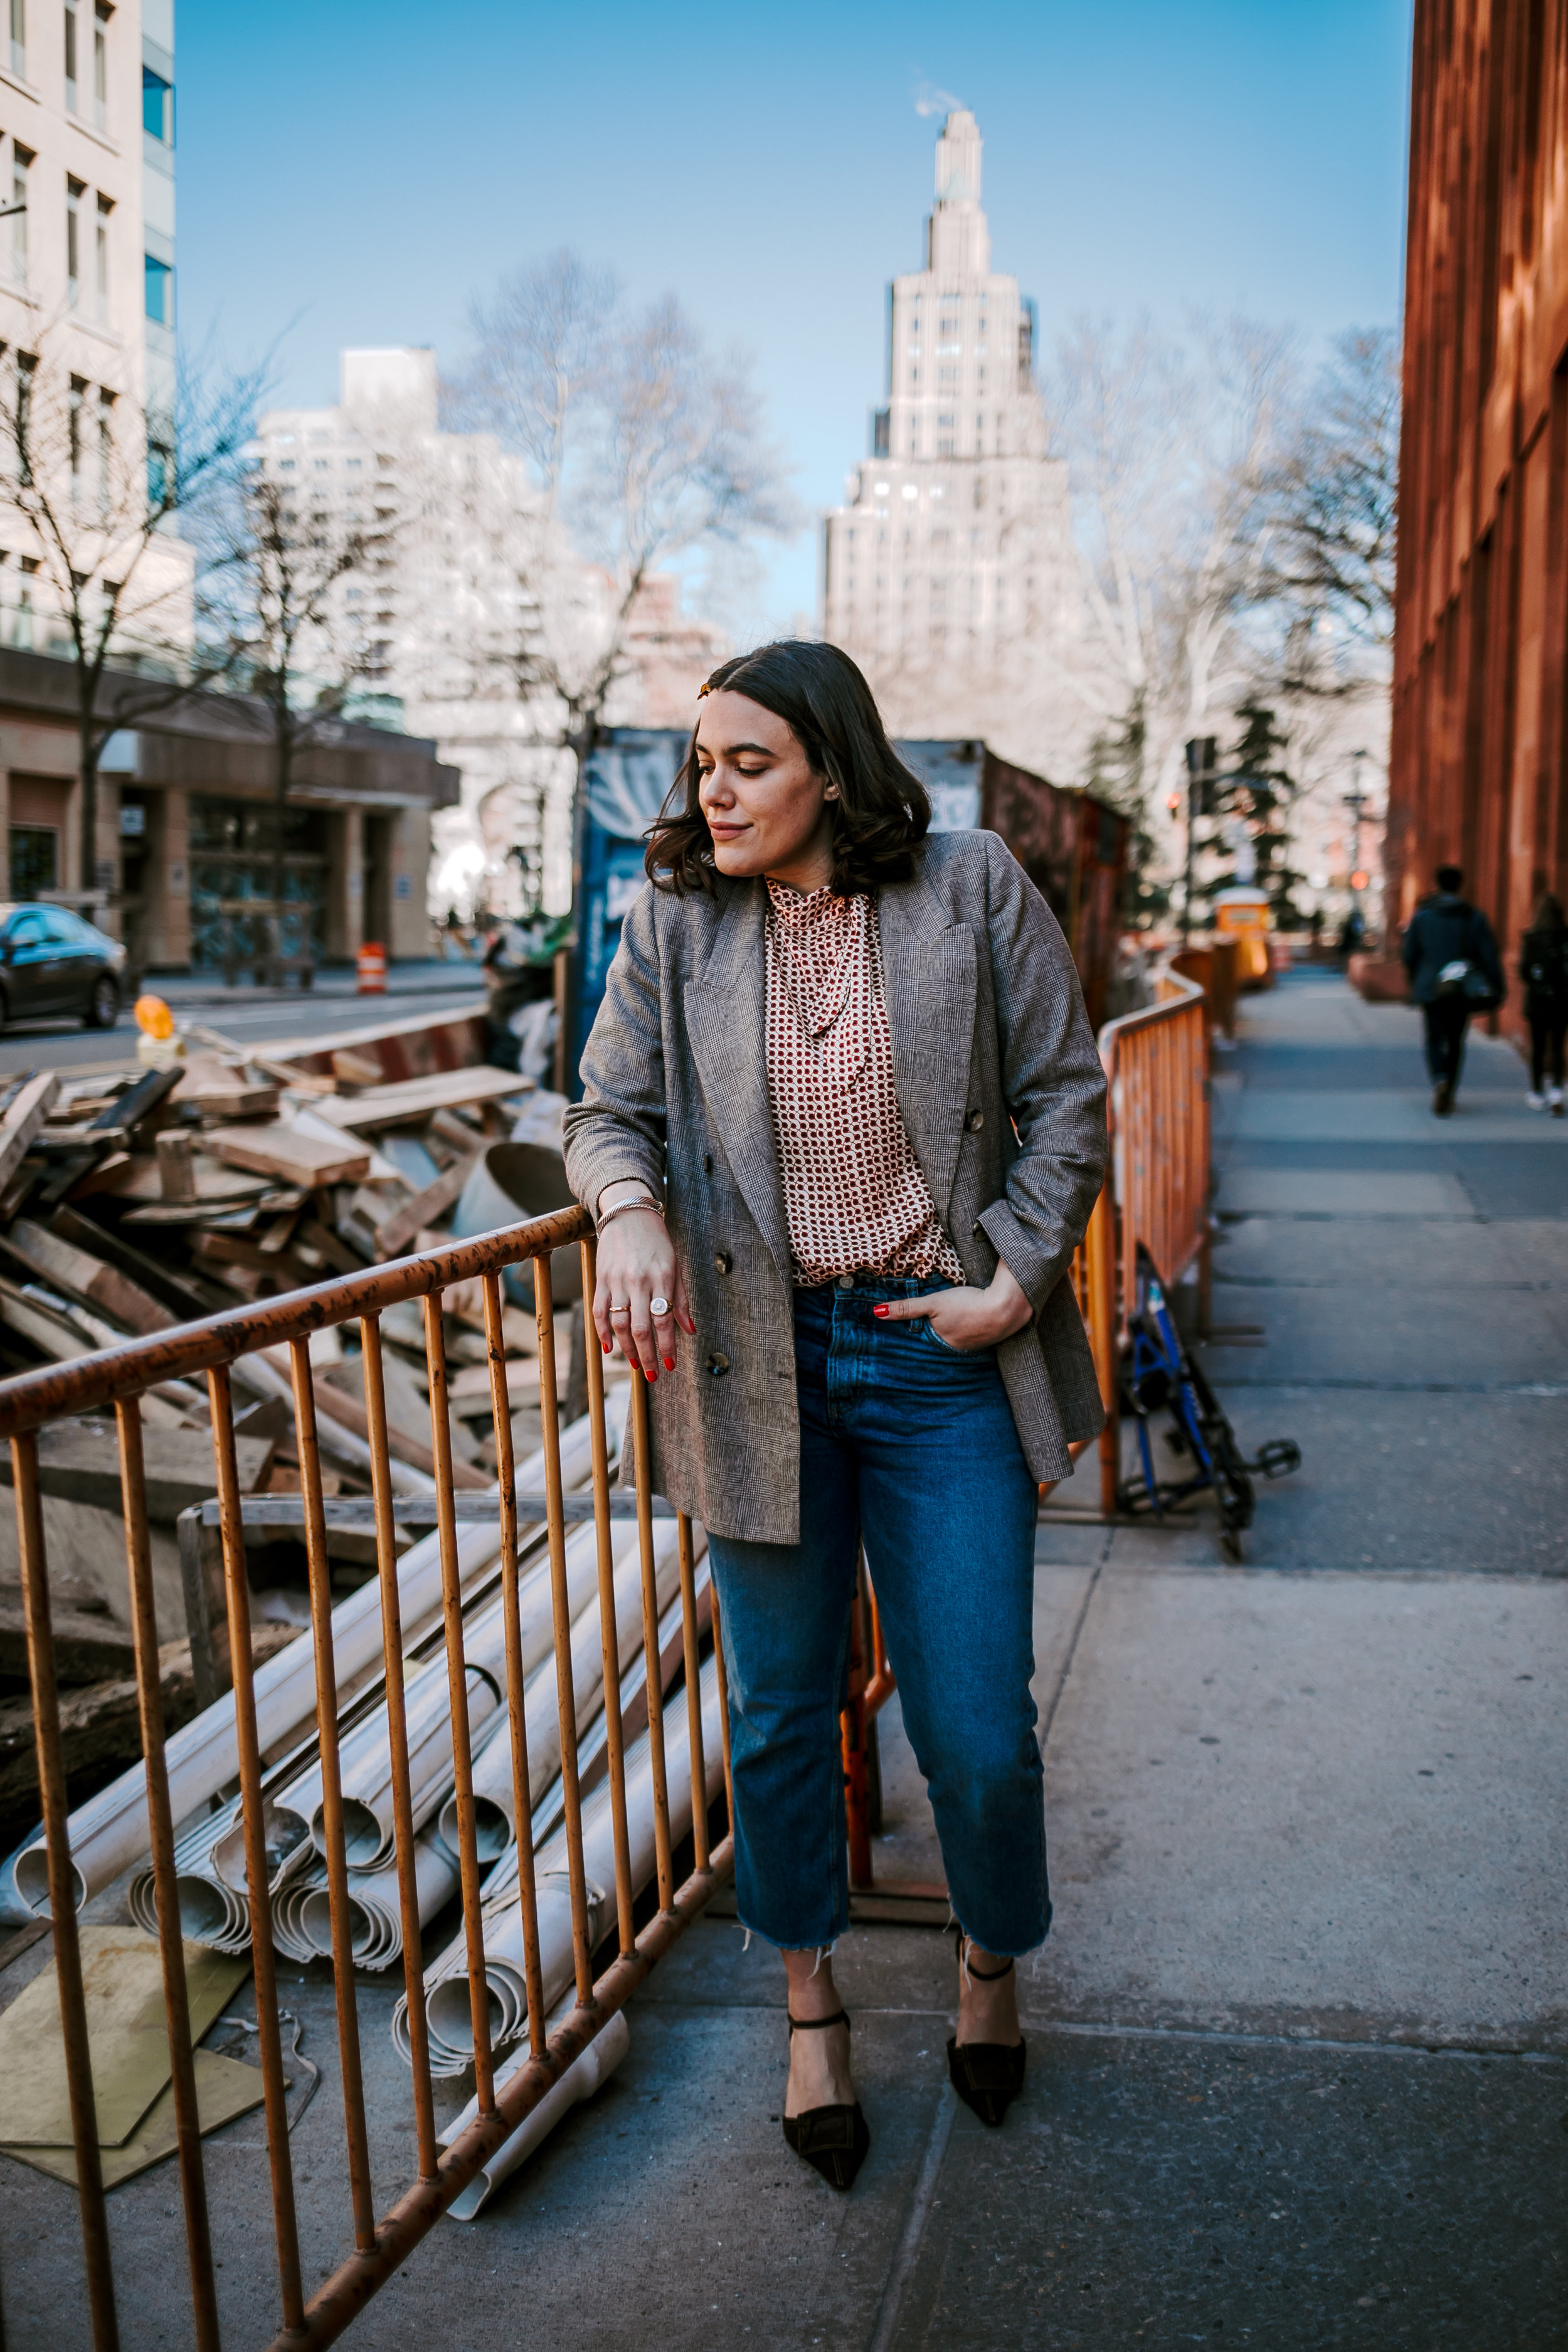 how-to-style-business-casual-blazer-and-printed-blouse-how-to-mix-and-match-prints-latina-new-york-city-fashion-blogger-style-operator-spring-fashion.jpg